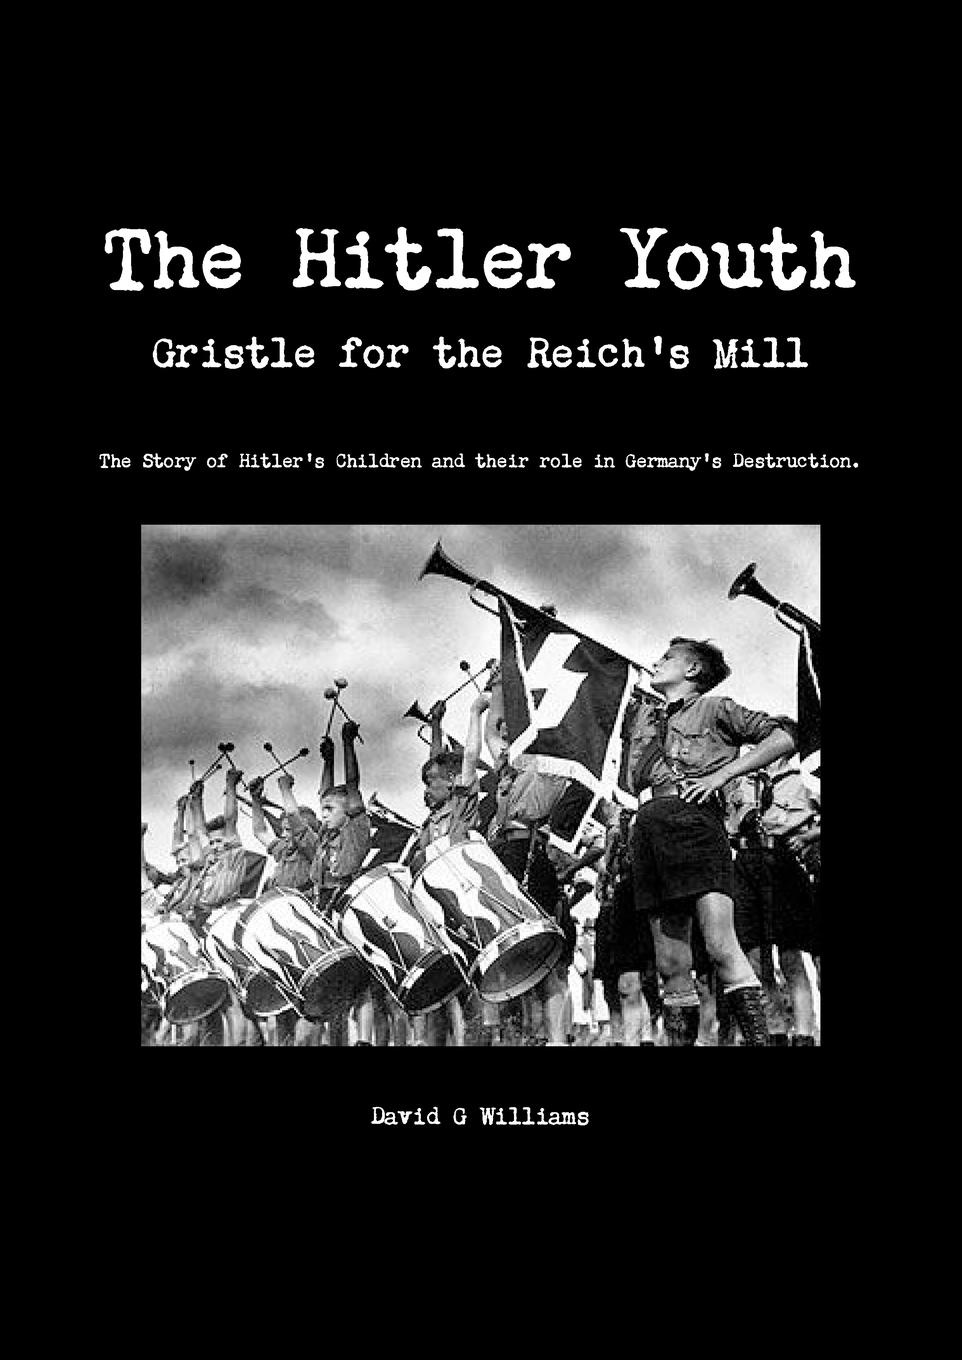 David G Williams The Hitler Youth, Gristle for the Reich.s Mill sommerville story present day paris and the battlefields the visitor s handbook with the chief excursions to the battlefields